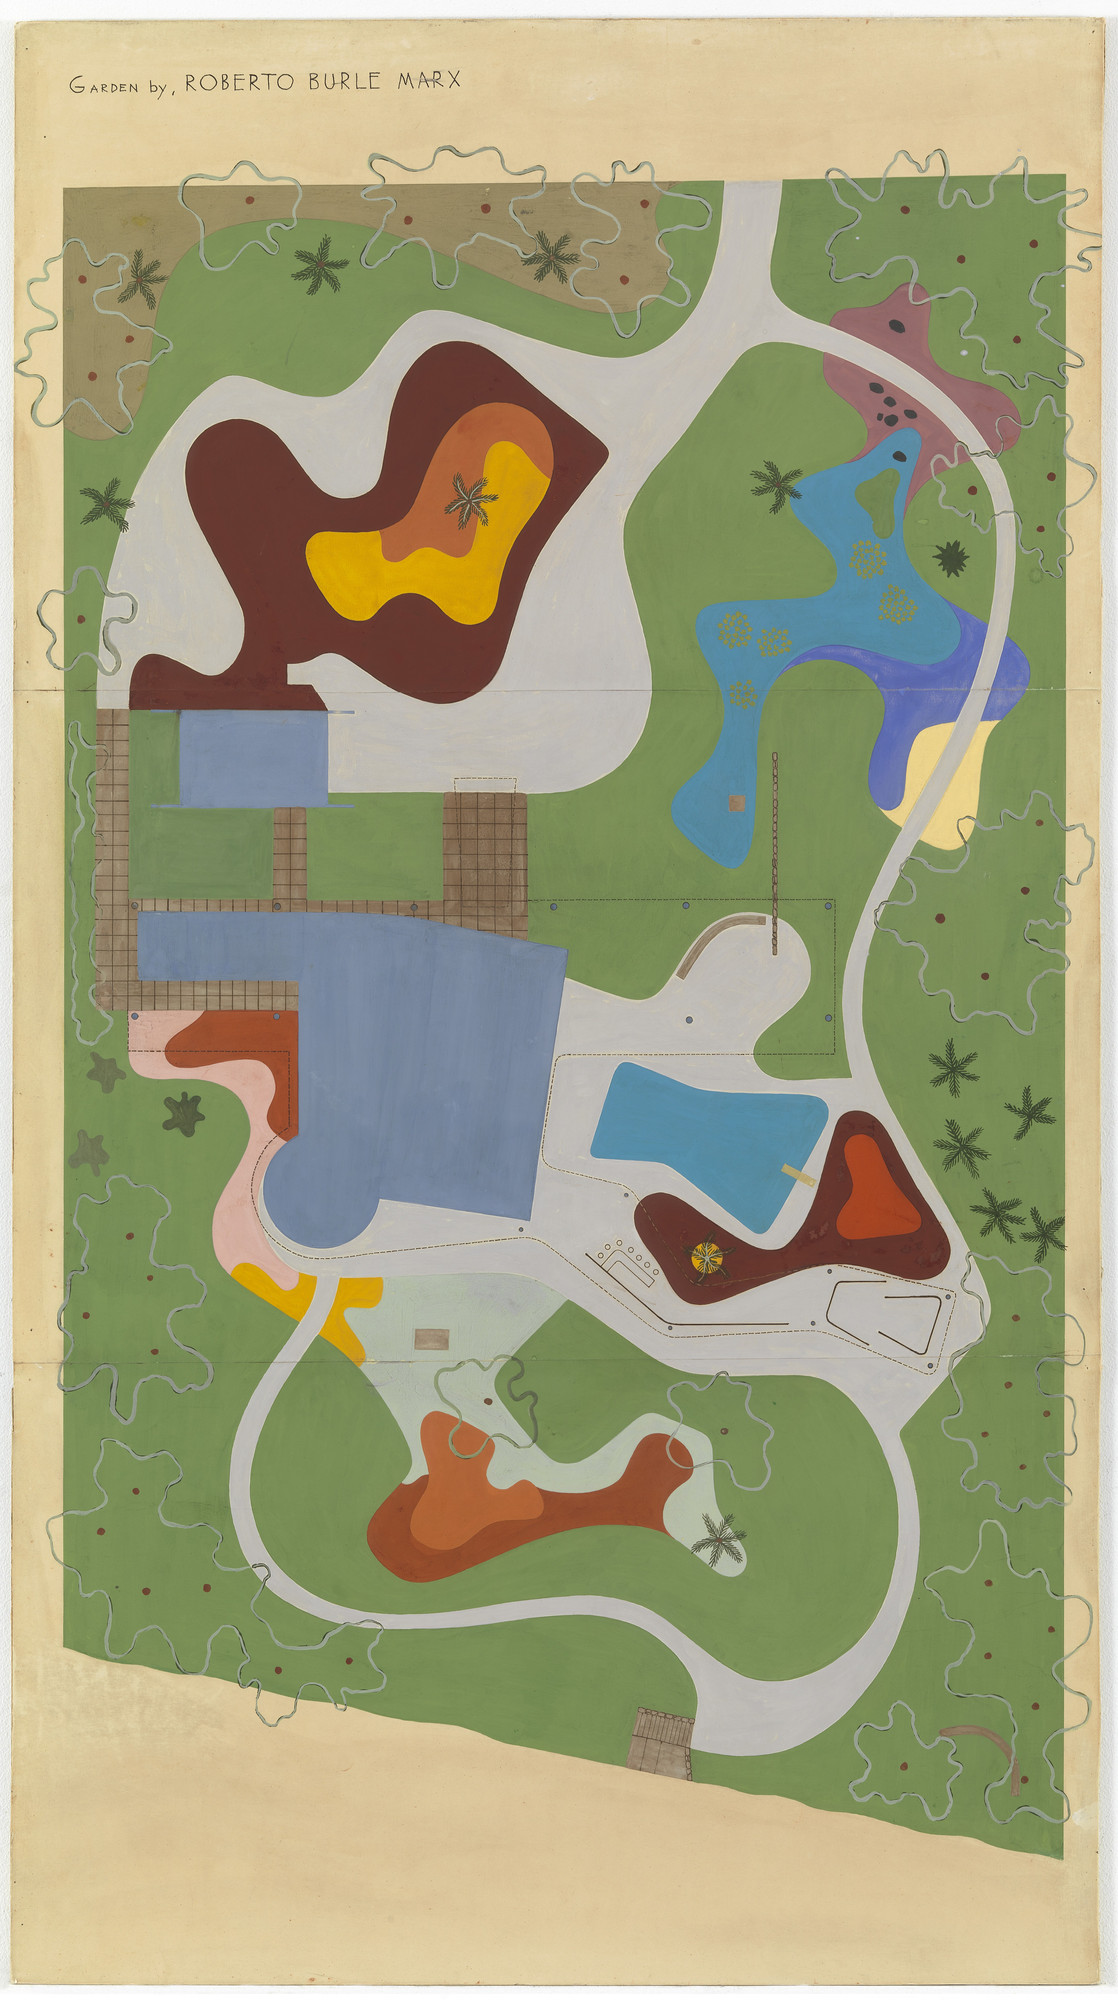 Roberto Burle Marx Garden Design For Beach House For Mr And Mrs